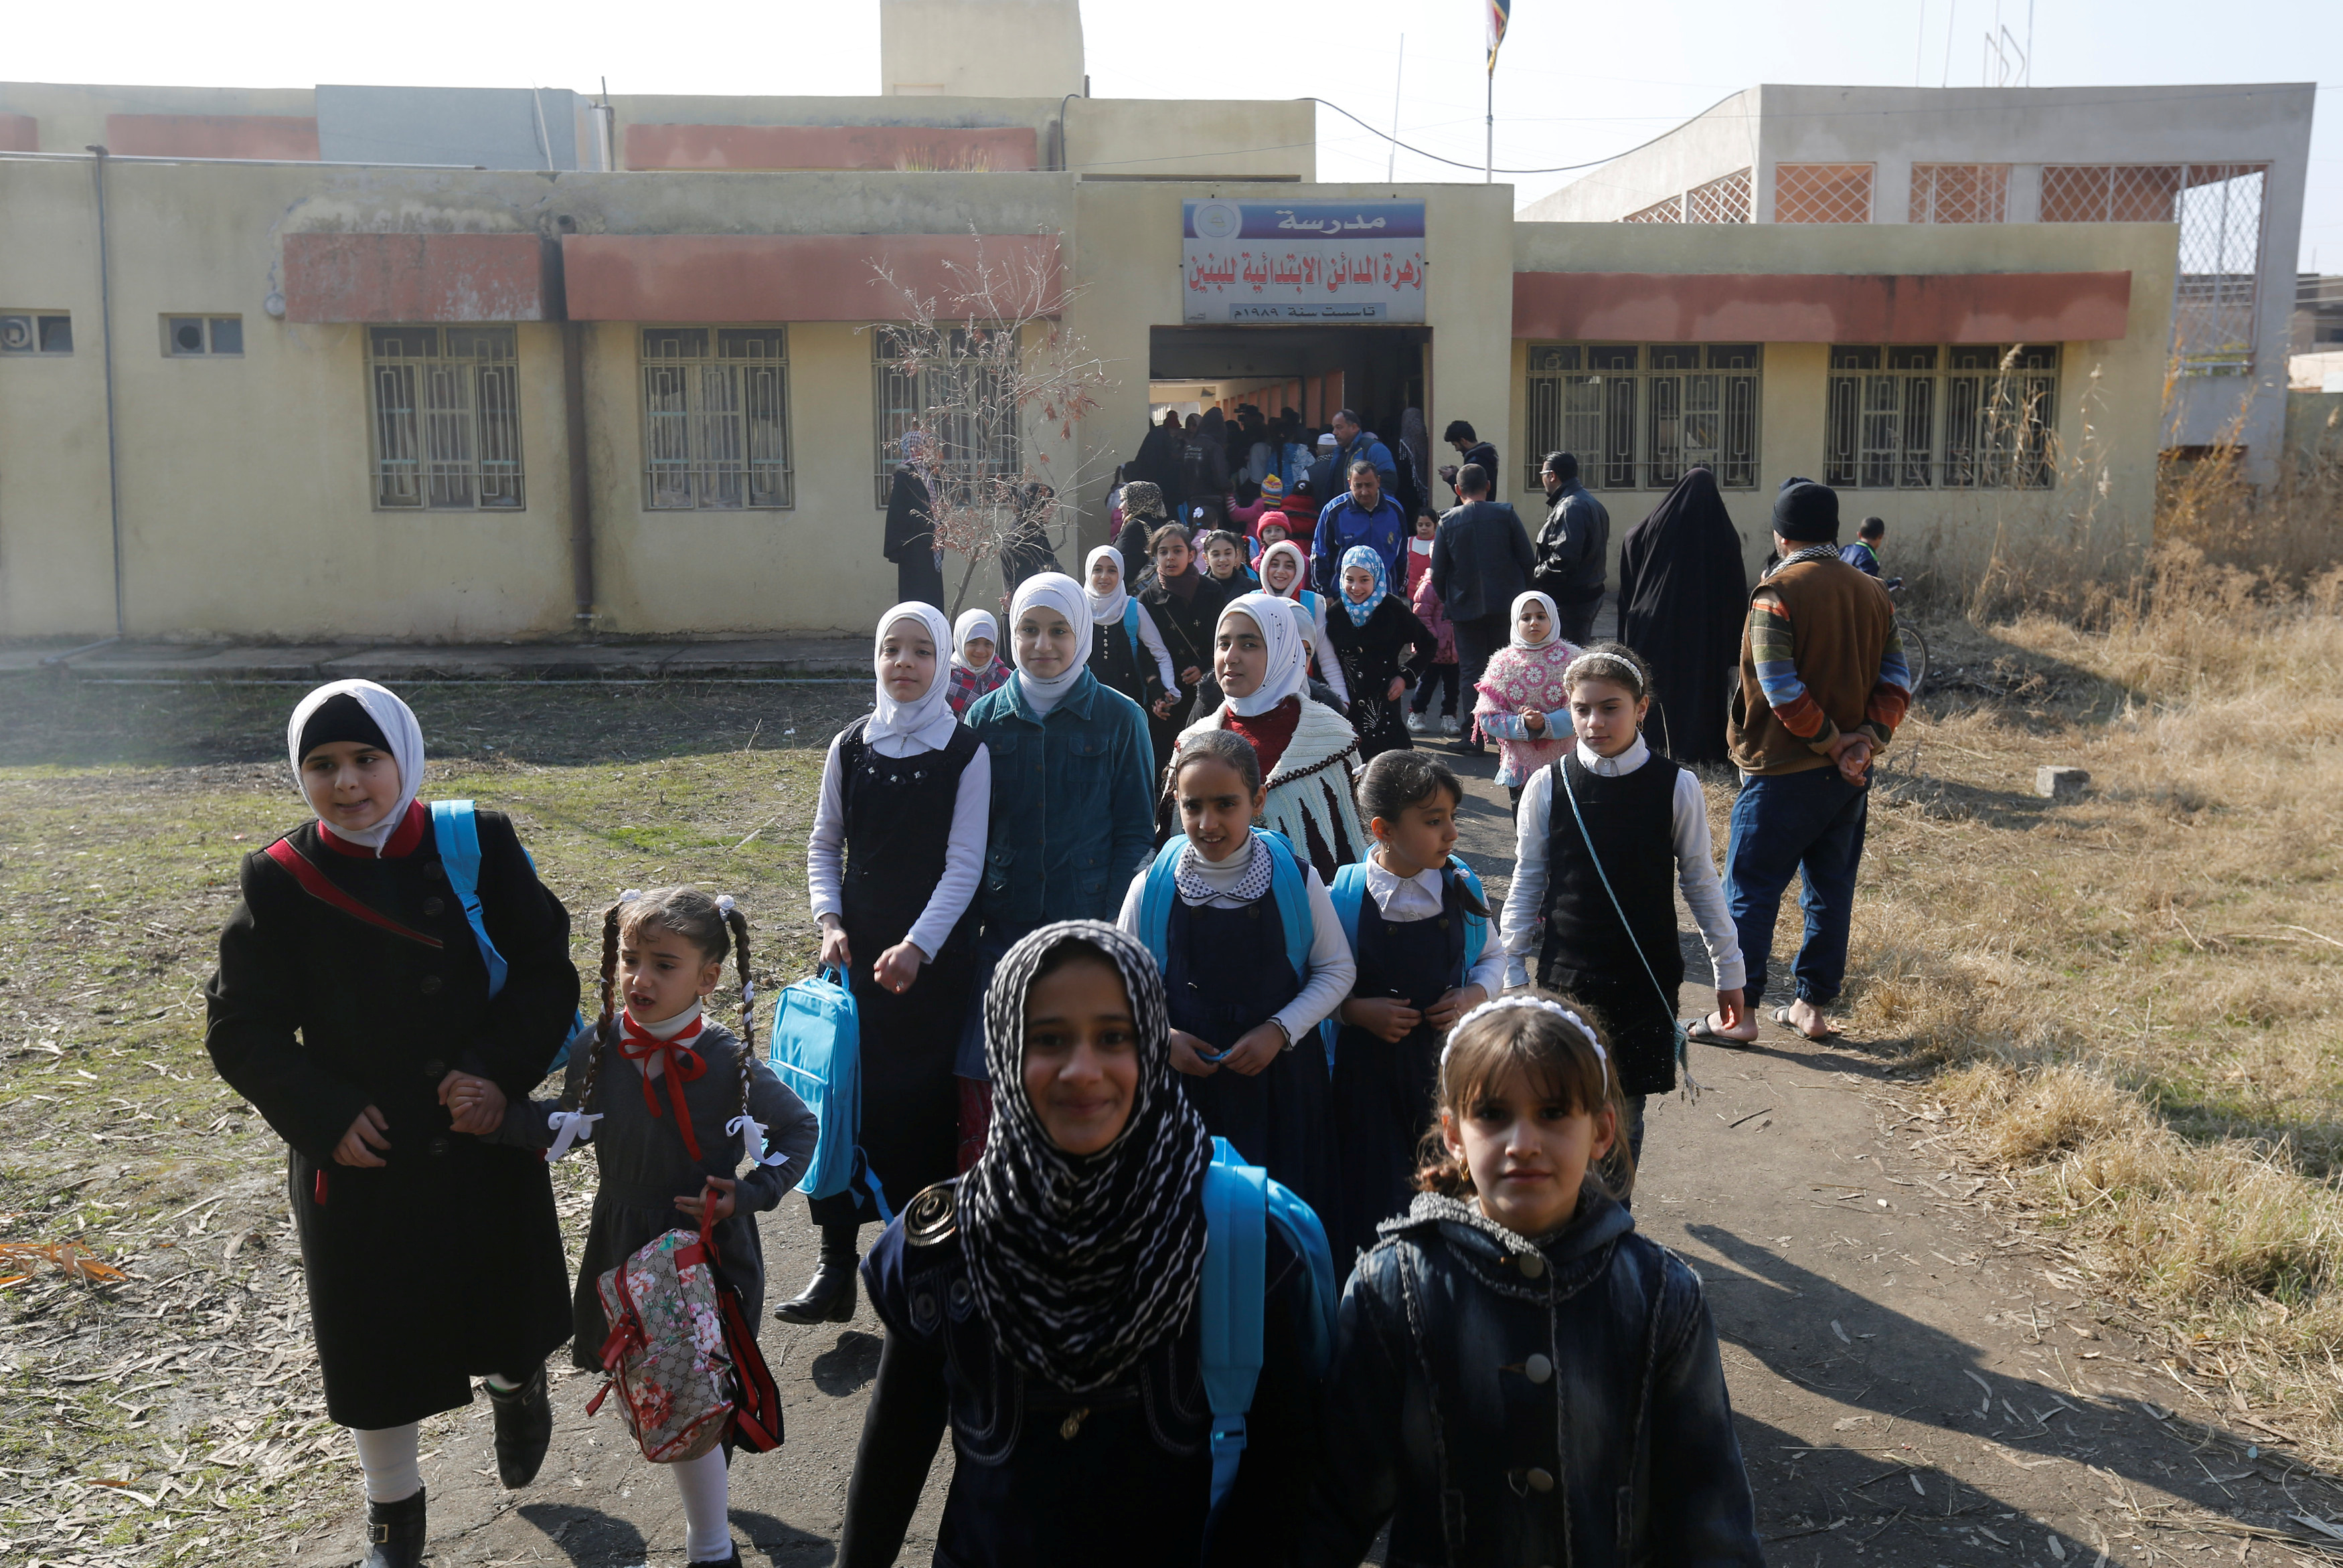 Students leave after registering for classes and getting new school bags in Mosul, Iraq on Jan. 23. Photo by Muhammad Hamed/Reuters